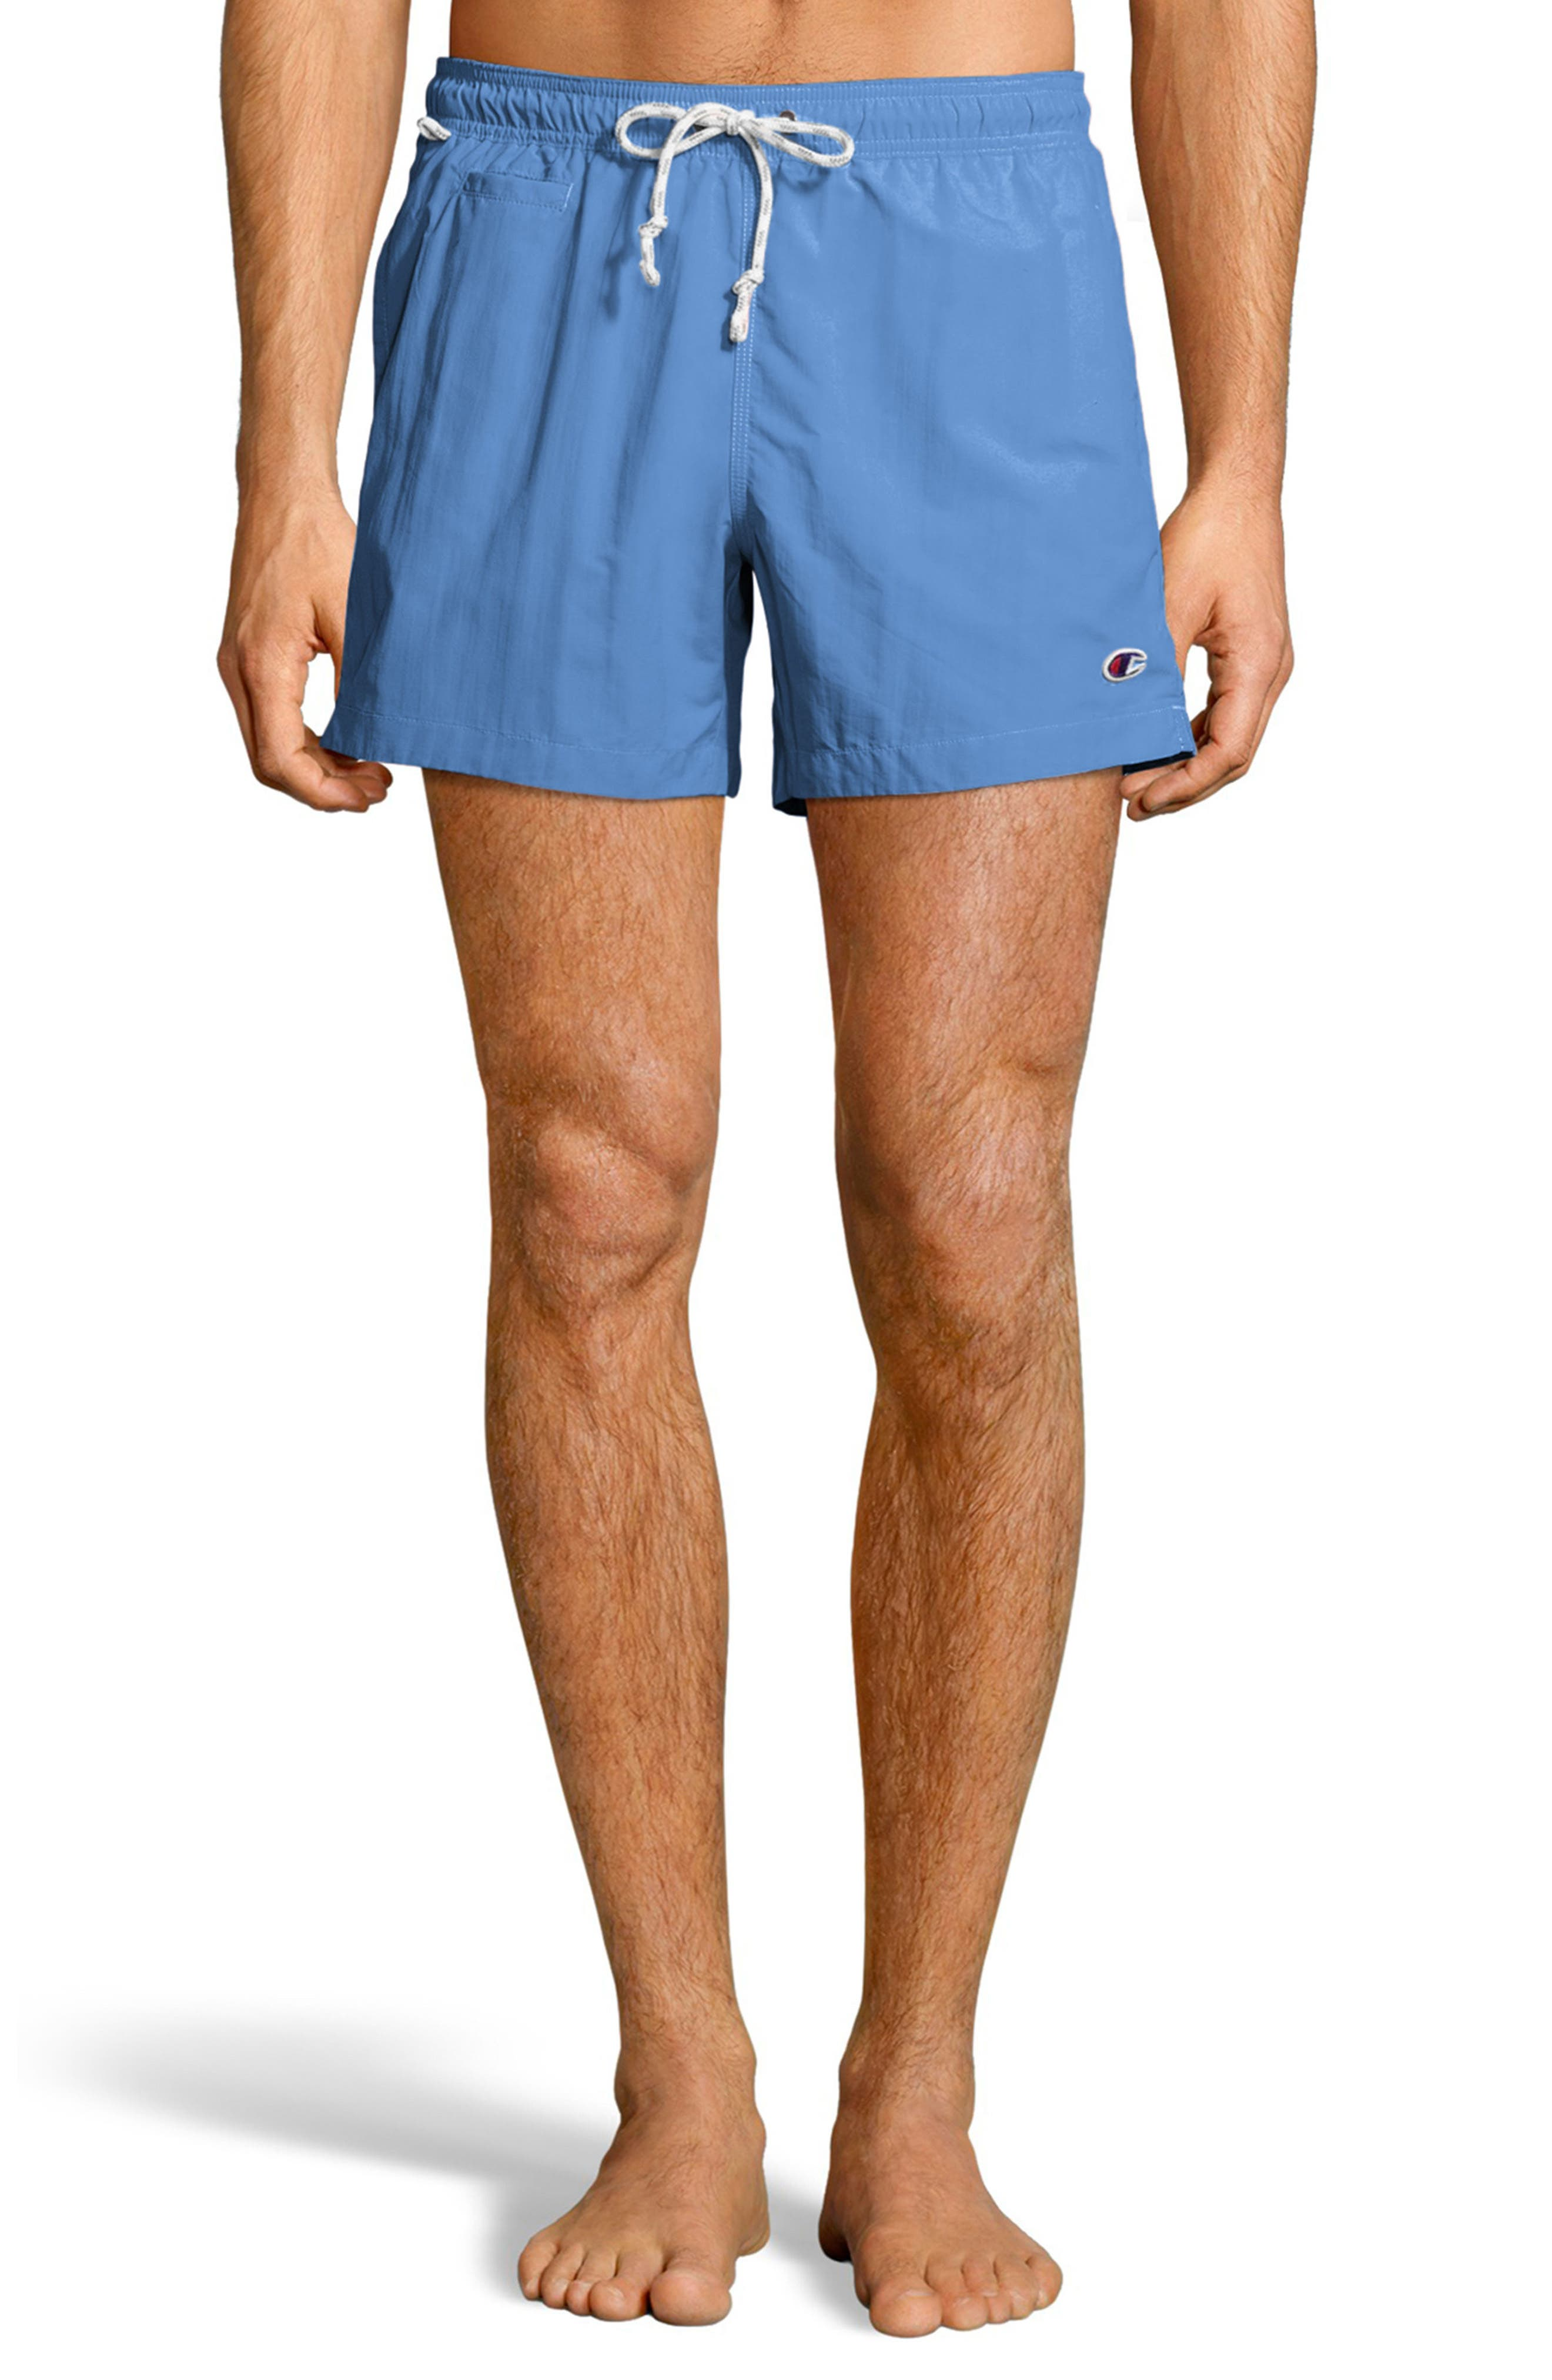 Pacific Sand Swim Trunks,                             Main thumbnail 1, color,                             452